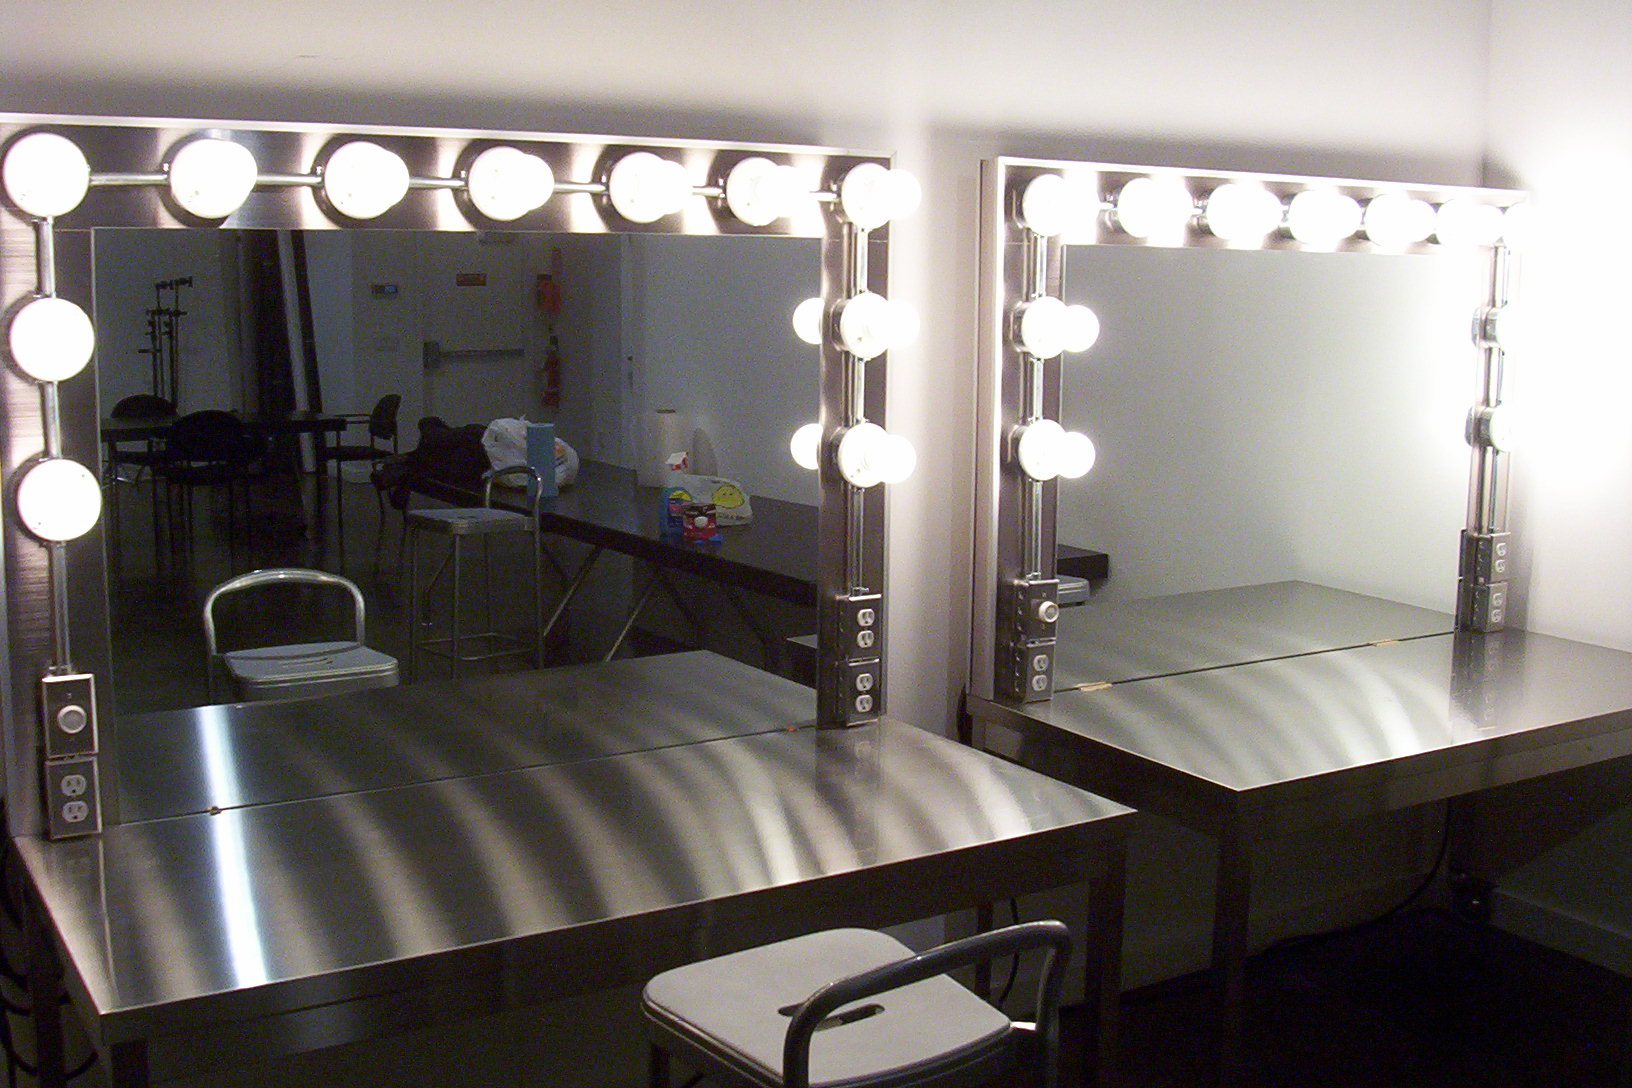 Replacement Makeup Room Lights : ControlBooth